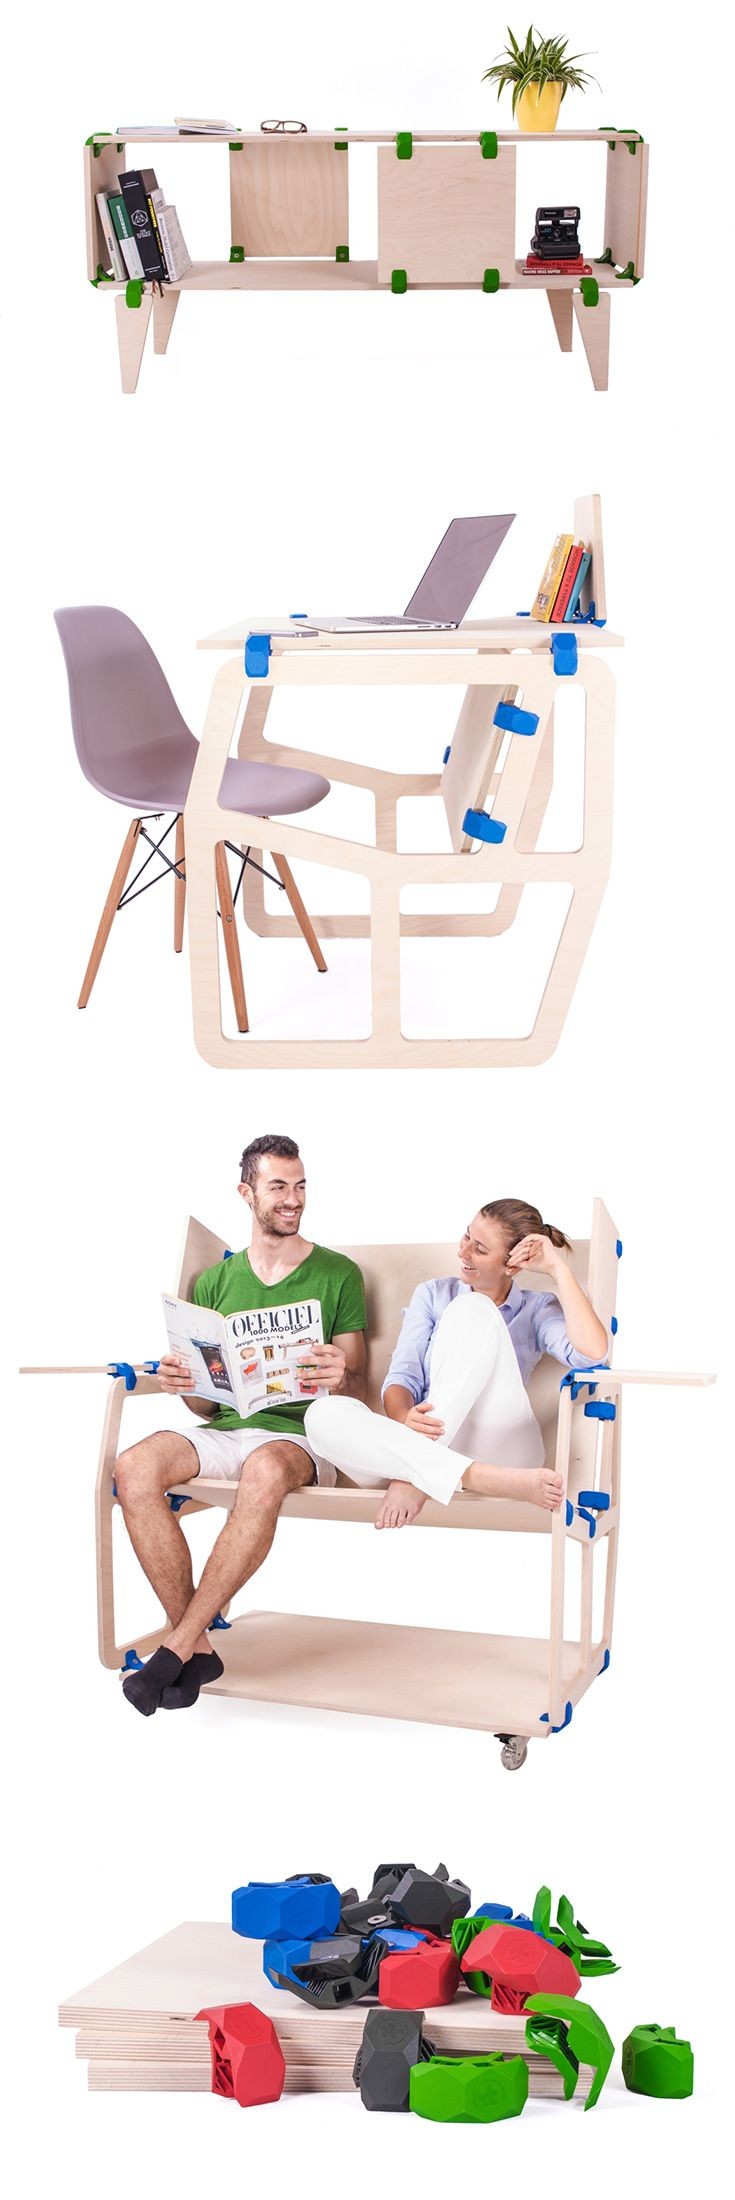 'Playwood' is an A'Design Award Winner which is more than just furniture, it allows the user to create to play around, and come up with different designs, such as desks, shelves, tables and more... READ MORE at Yanko Design !